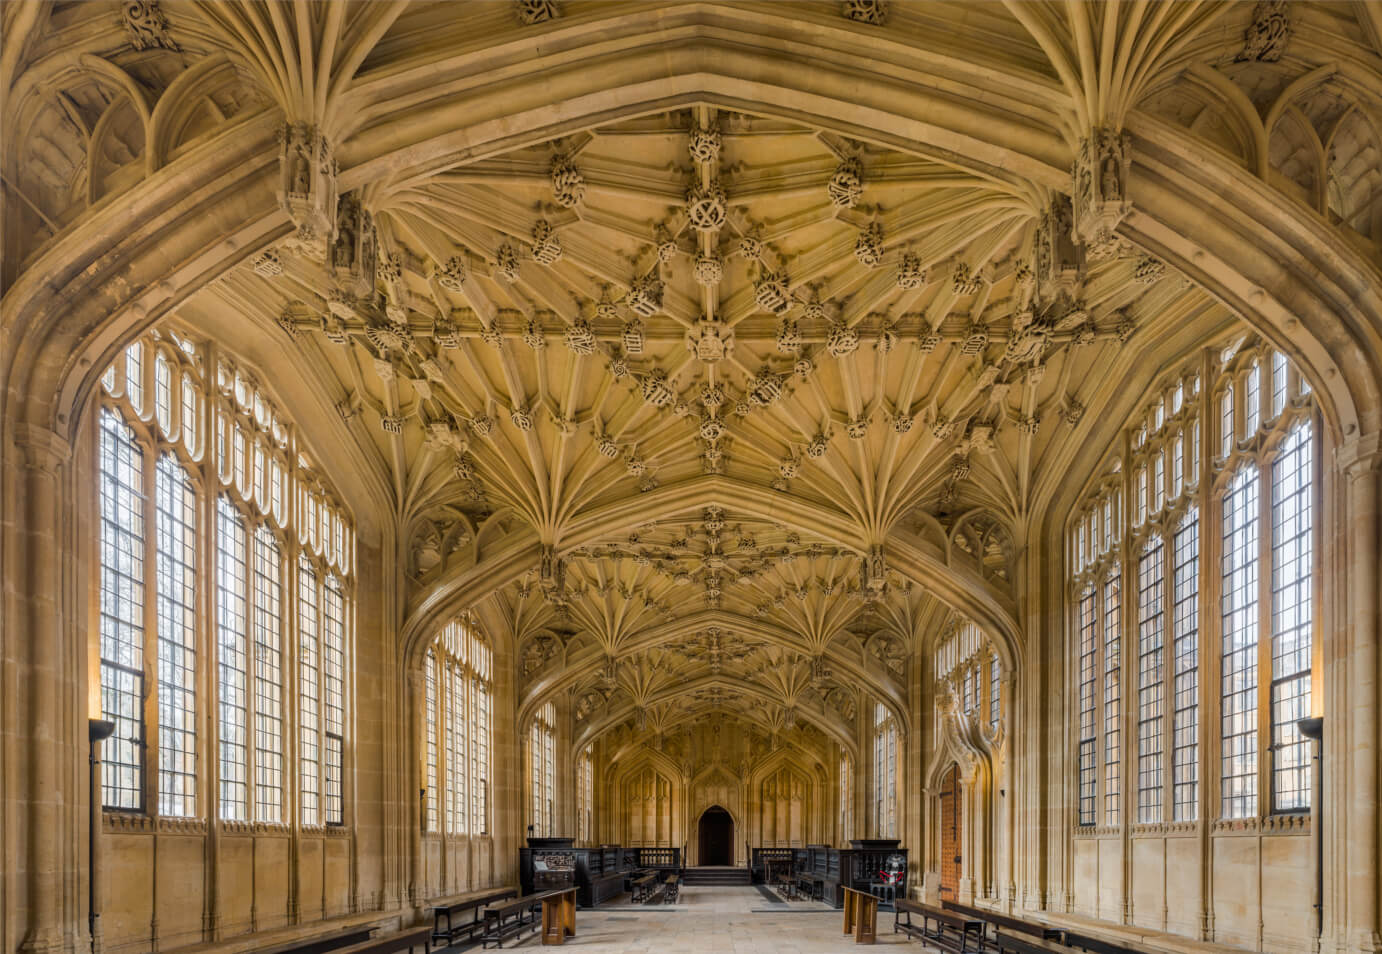 divinity_school_interior_1_bodleian_library_oxford_uk_-_diliff-1